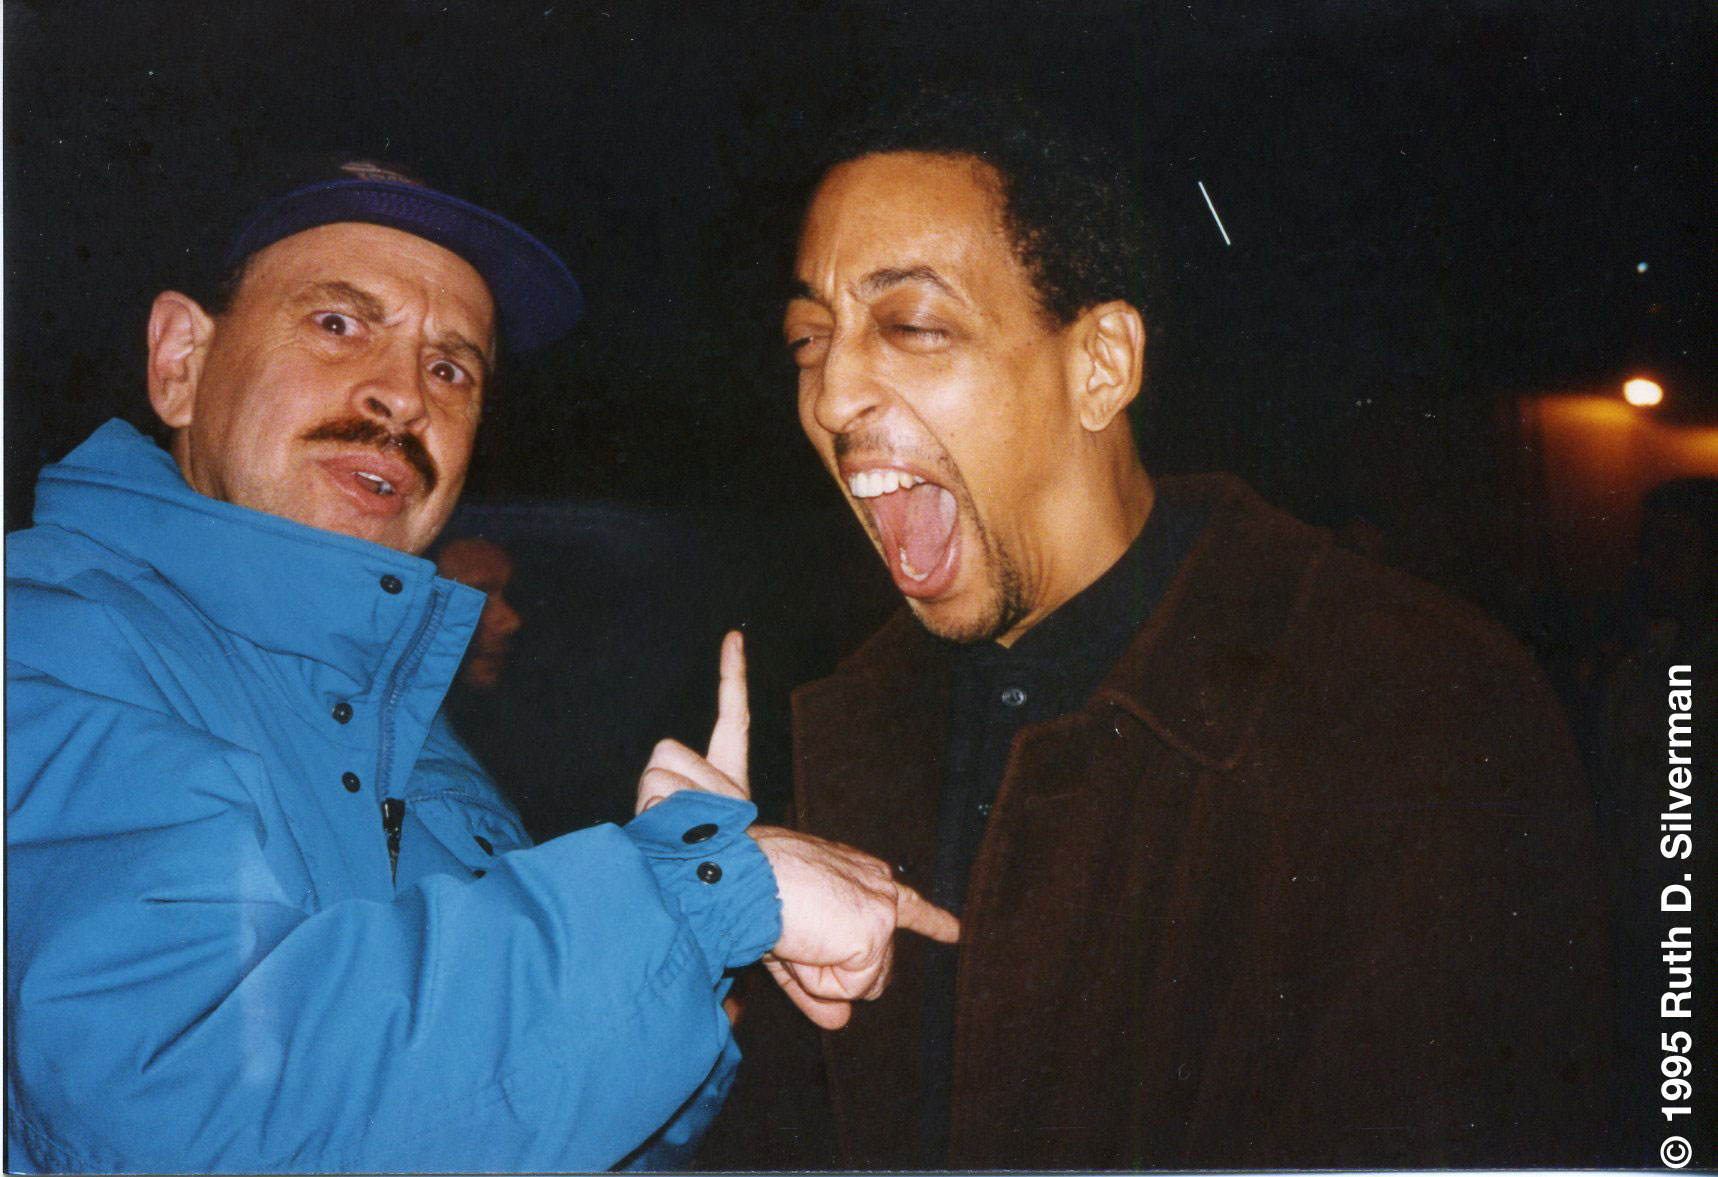 The late, great Gregory Hines was a huge bodybuilding fan. With my colleague Lonnie Teper in '95.